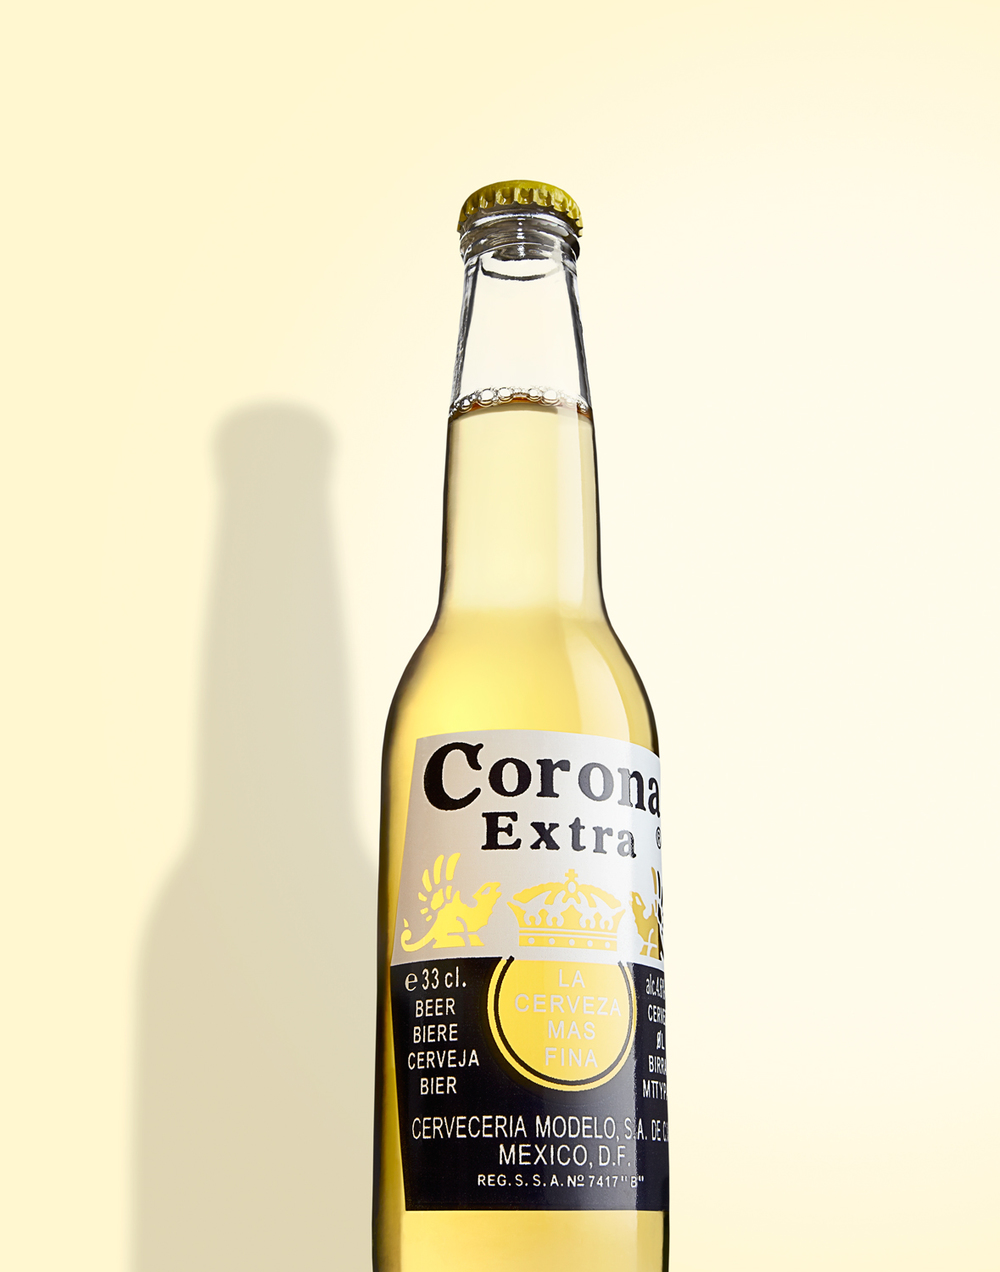 Corona-Beer-bottle.jpg